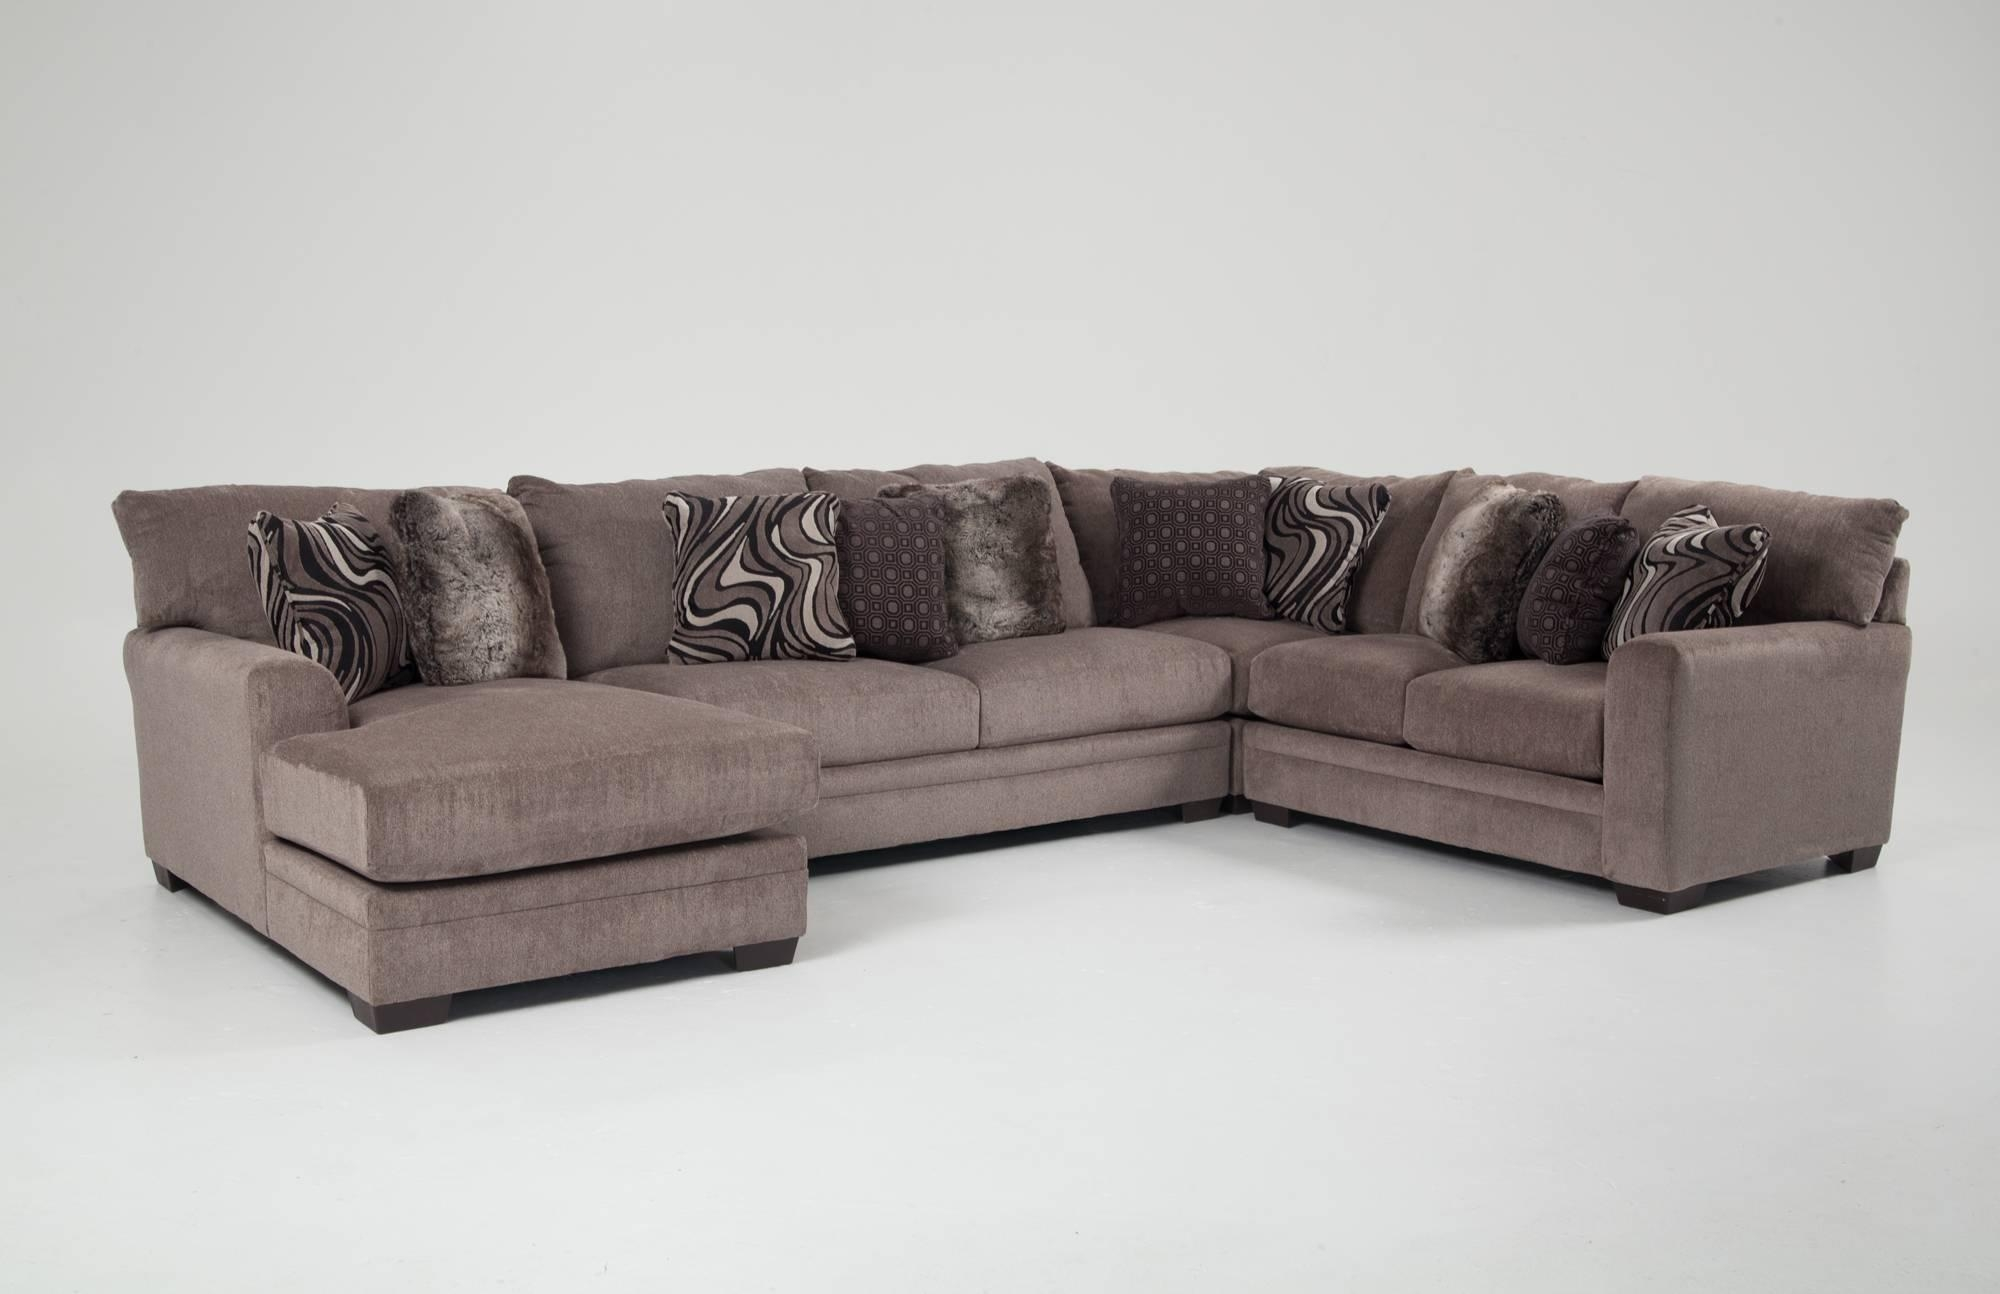 Luxe Sectional | Living Room Furniture | Bob's Discount Furniture Pertaining To Luxe Sofas (Image 9 of 20)